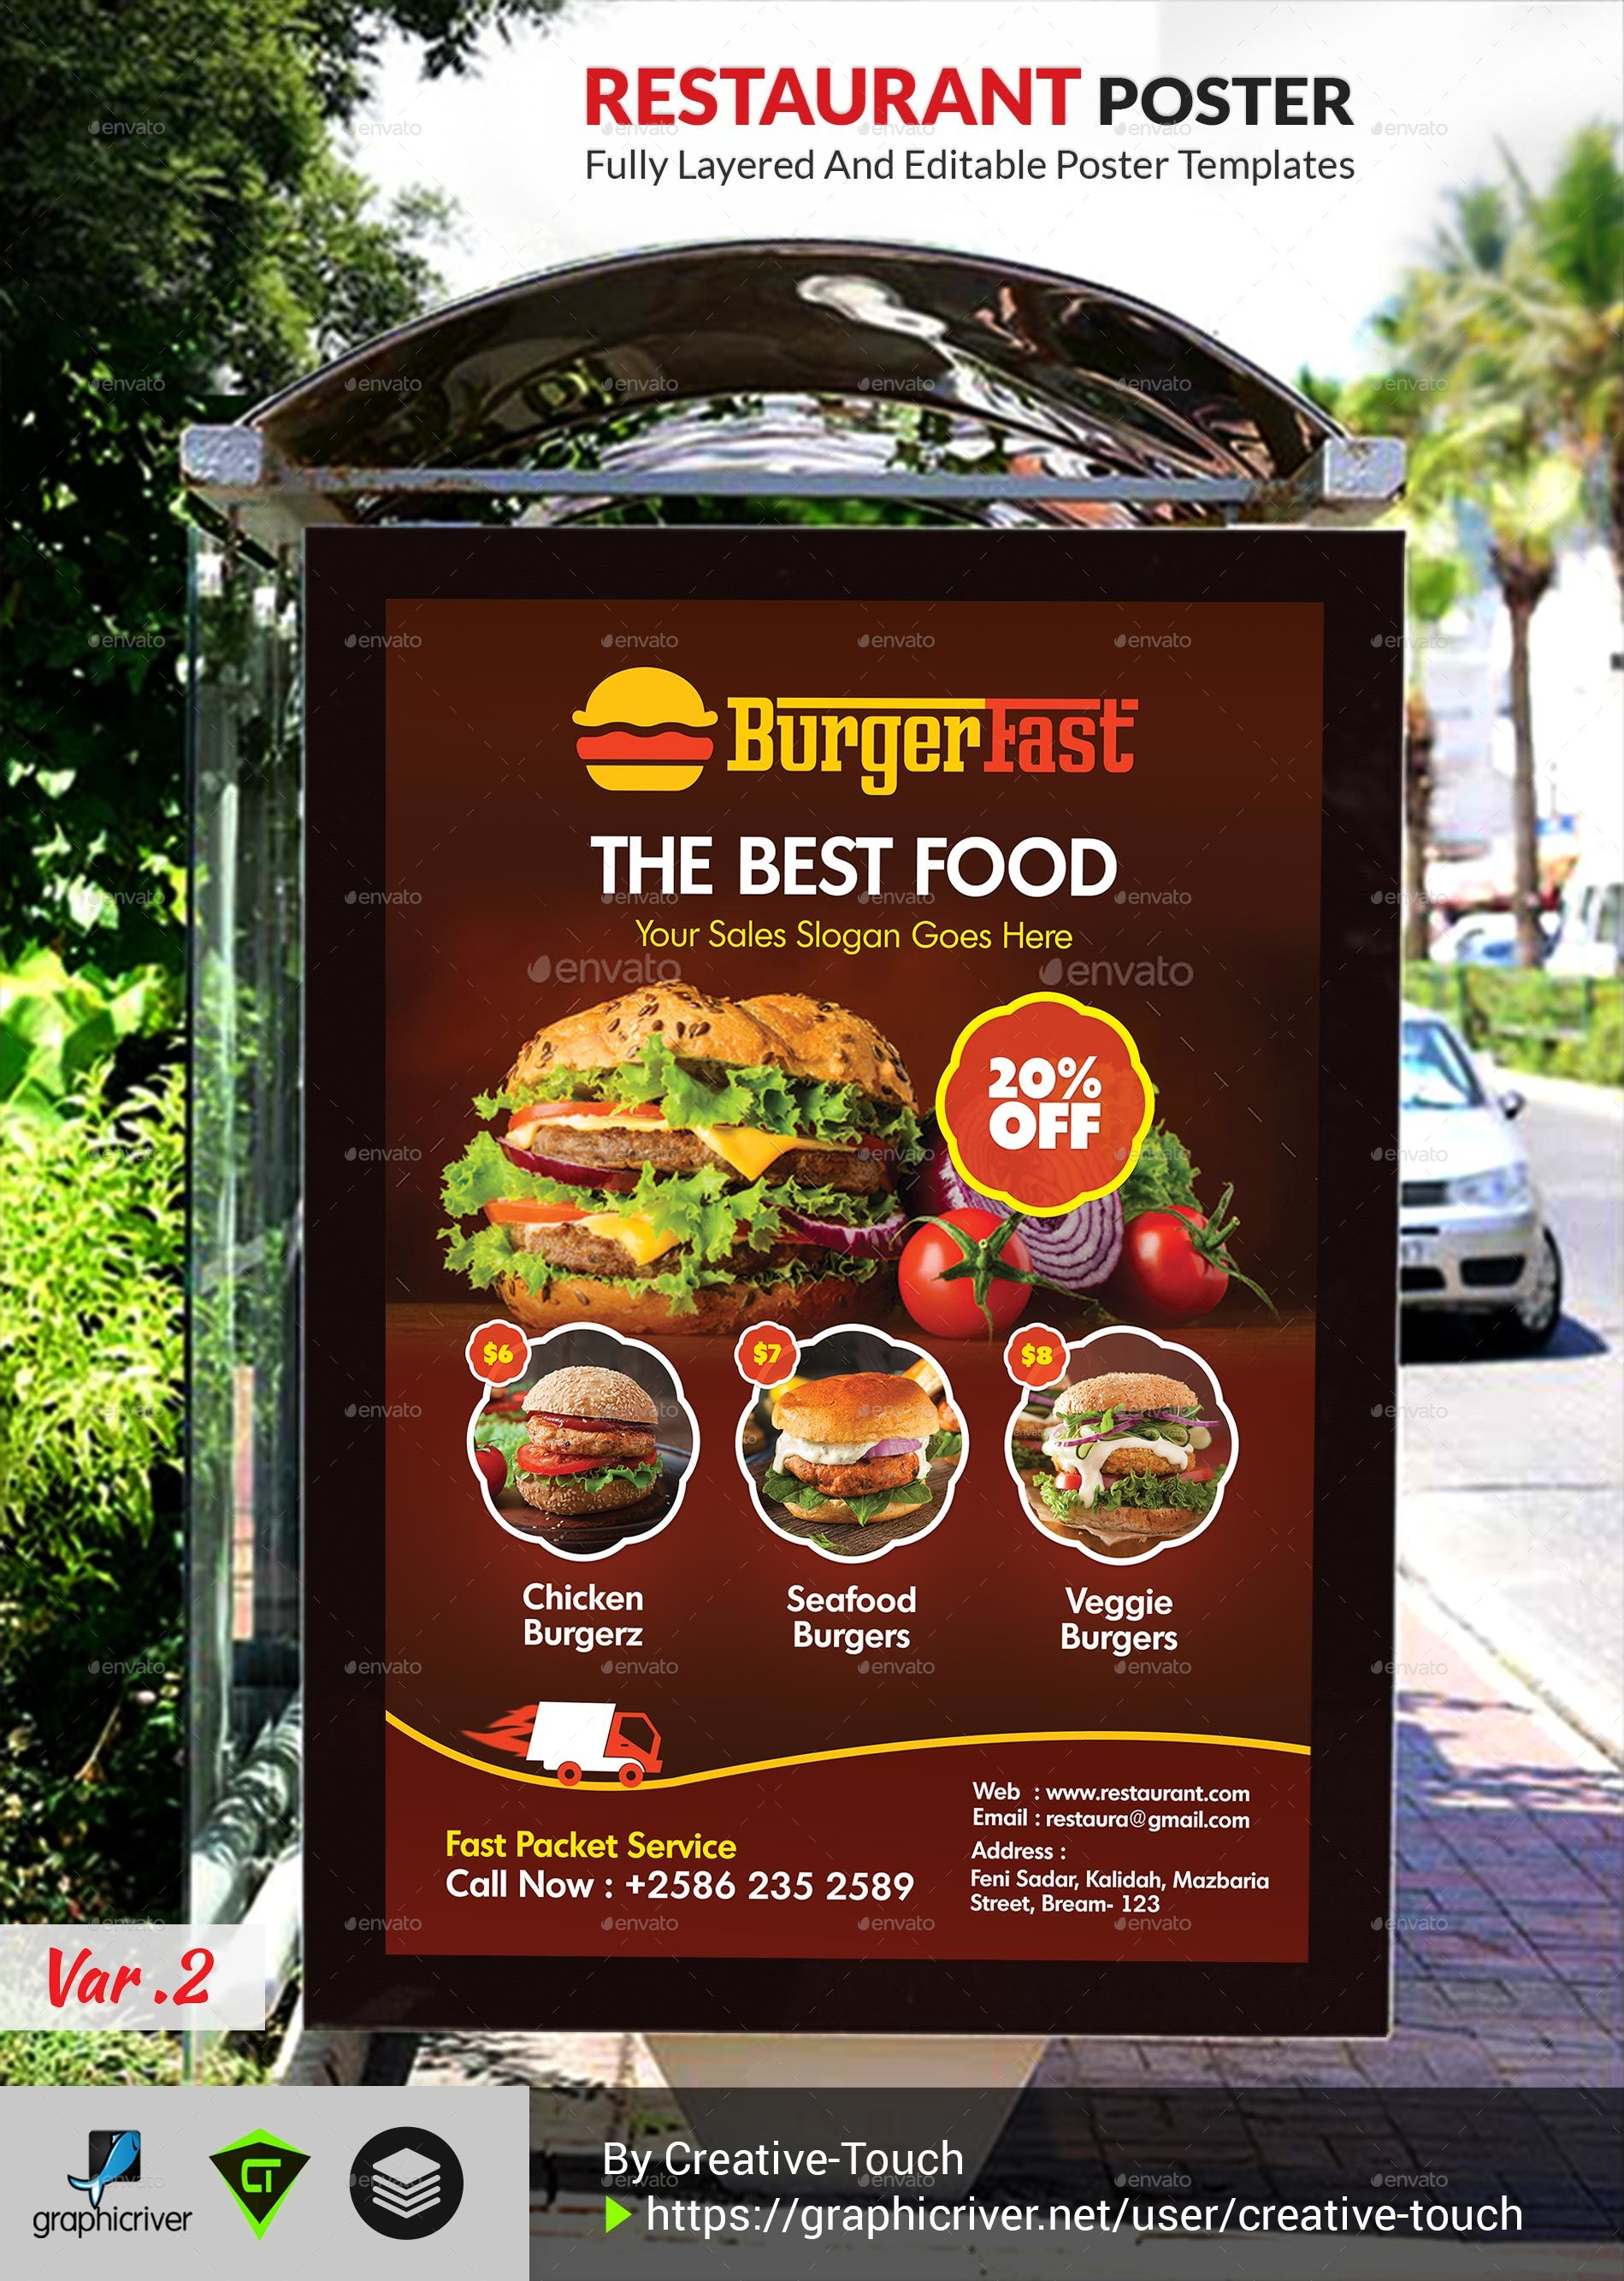 Restaurant Poster by Creative-Touch | GraphicRiver